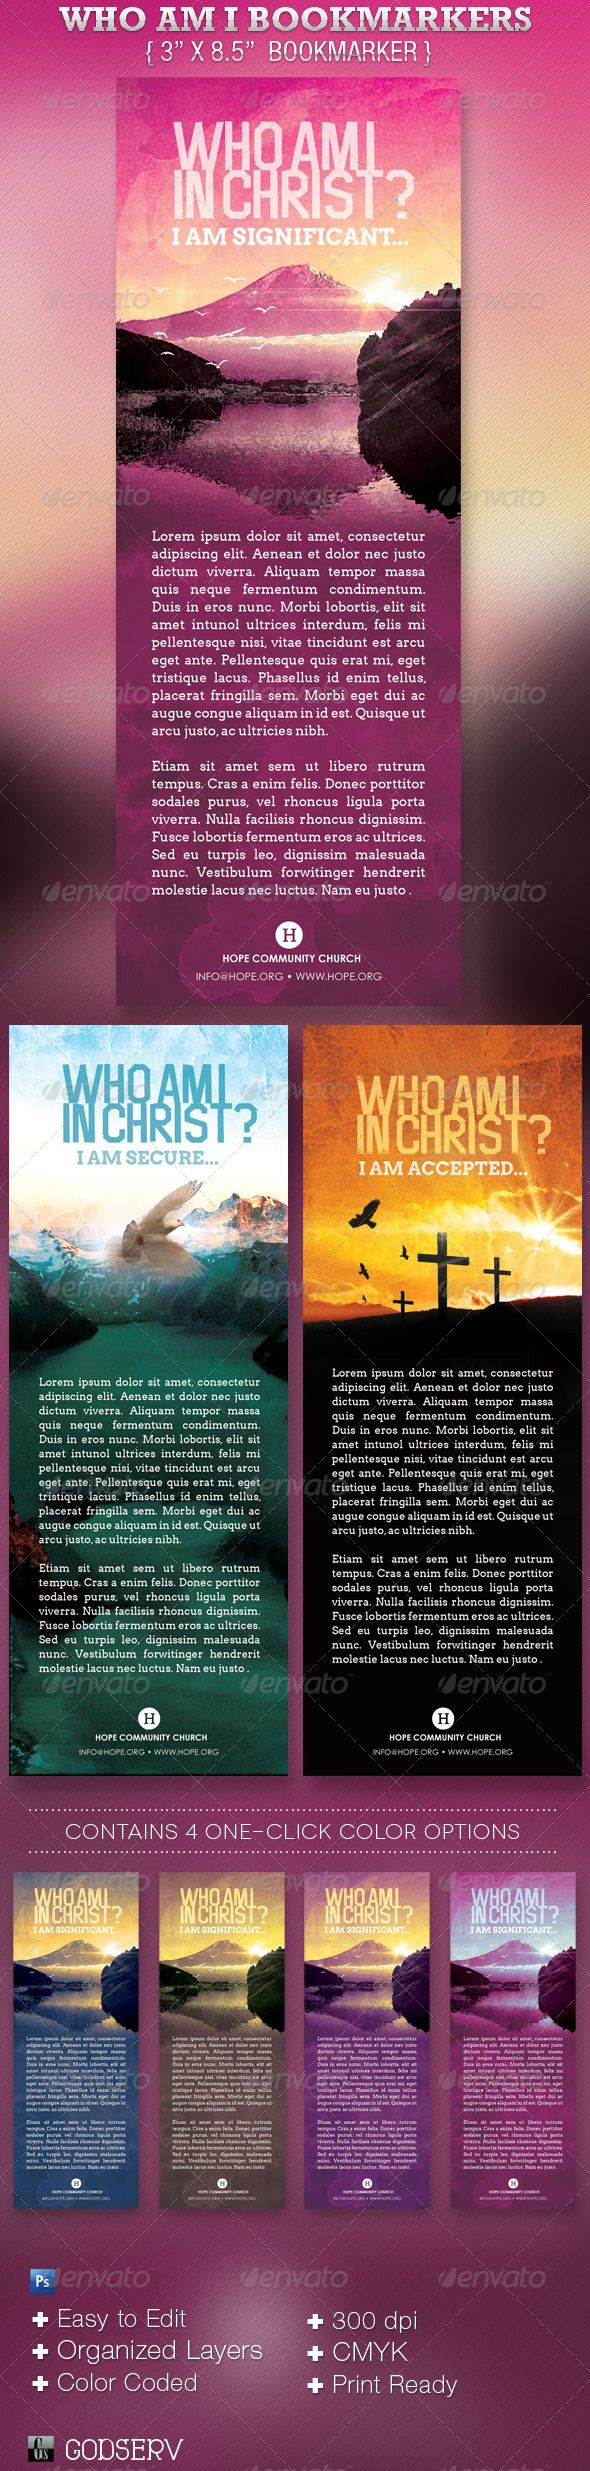 Who Am I In Christ Bookmarker Template is for churches. The bookmarker can be used for commemorative gifts, motivational gifts, stocking stuffer, conversational or teaching events. Make it part of your arsenal in your template database.